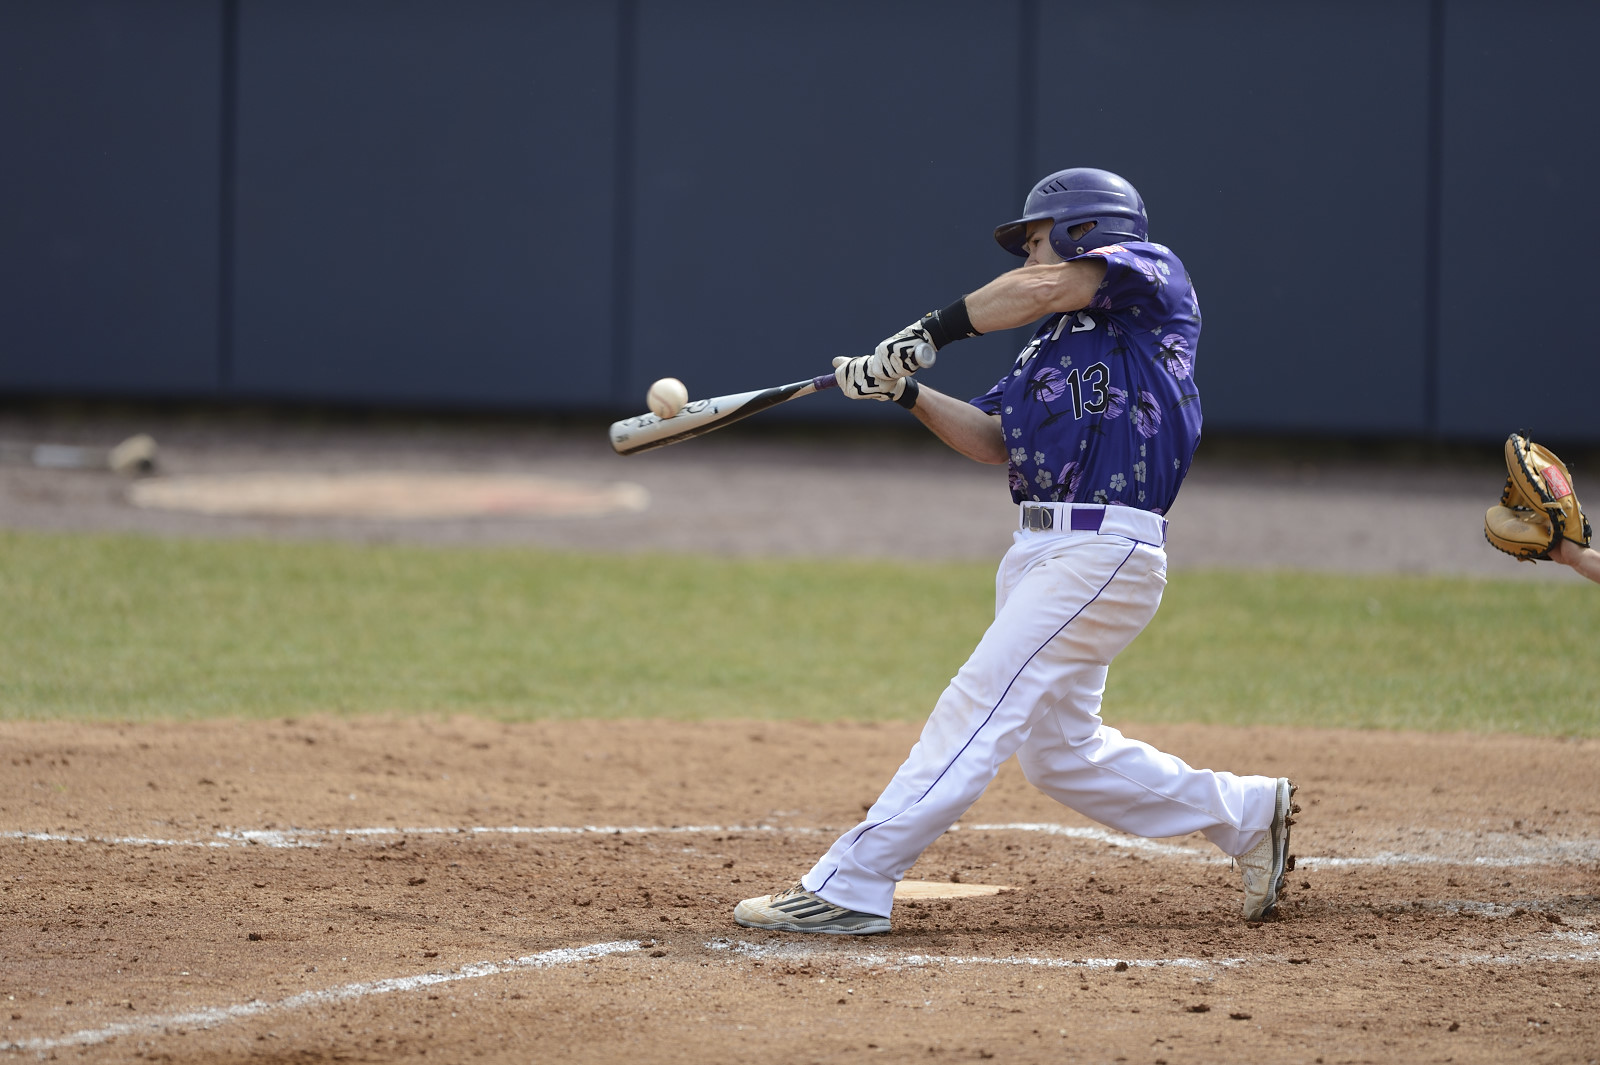 Baseball Back In The Win Column With Florida Doubleheader Sweep Over Bentley